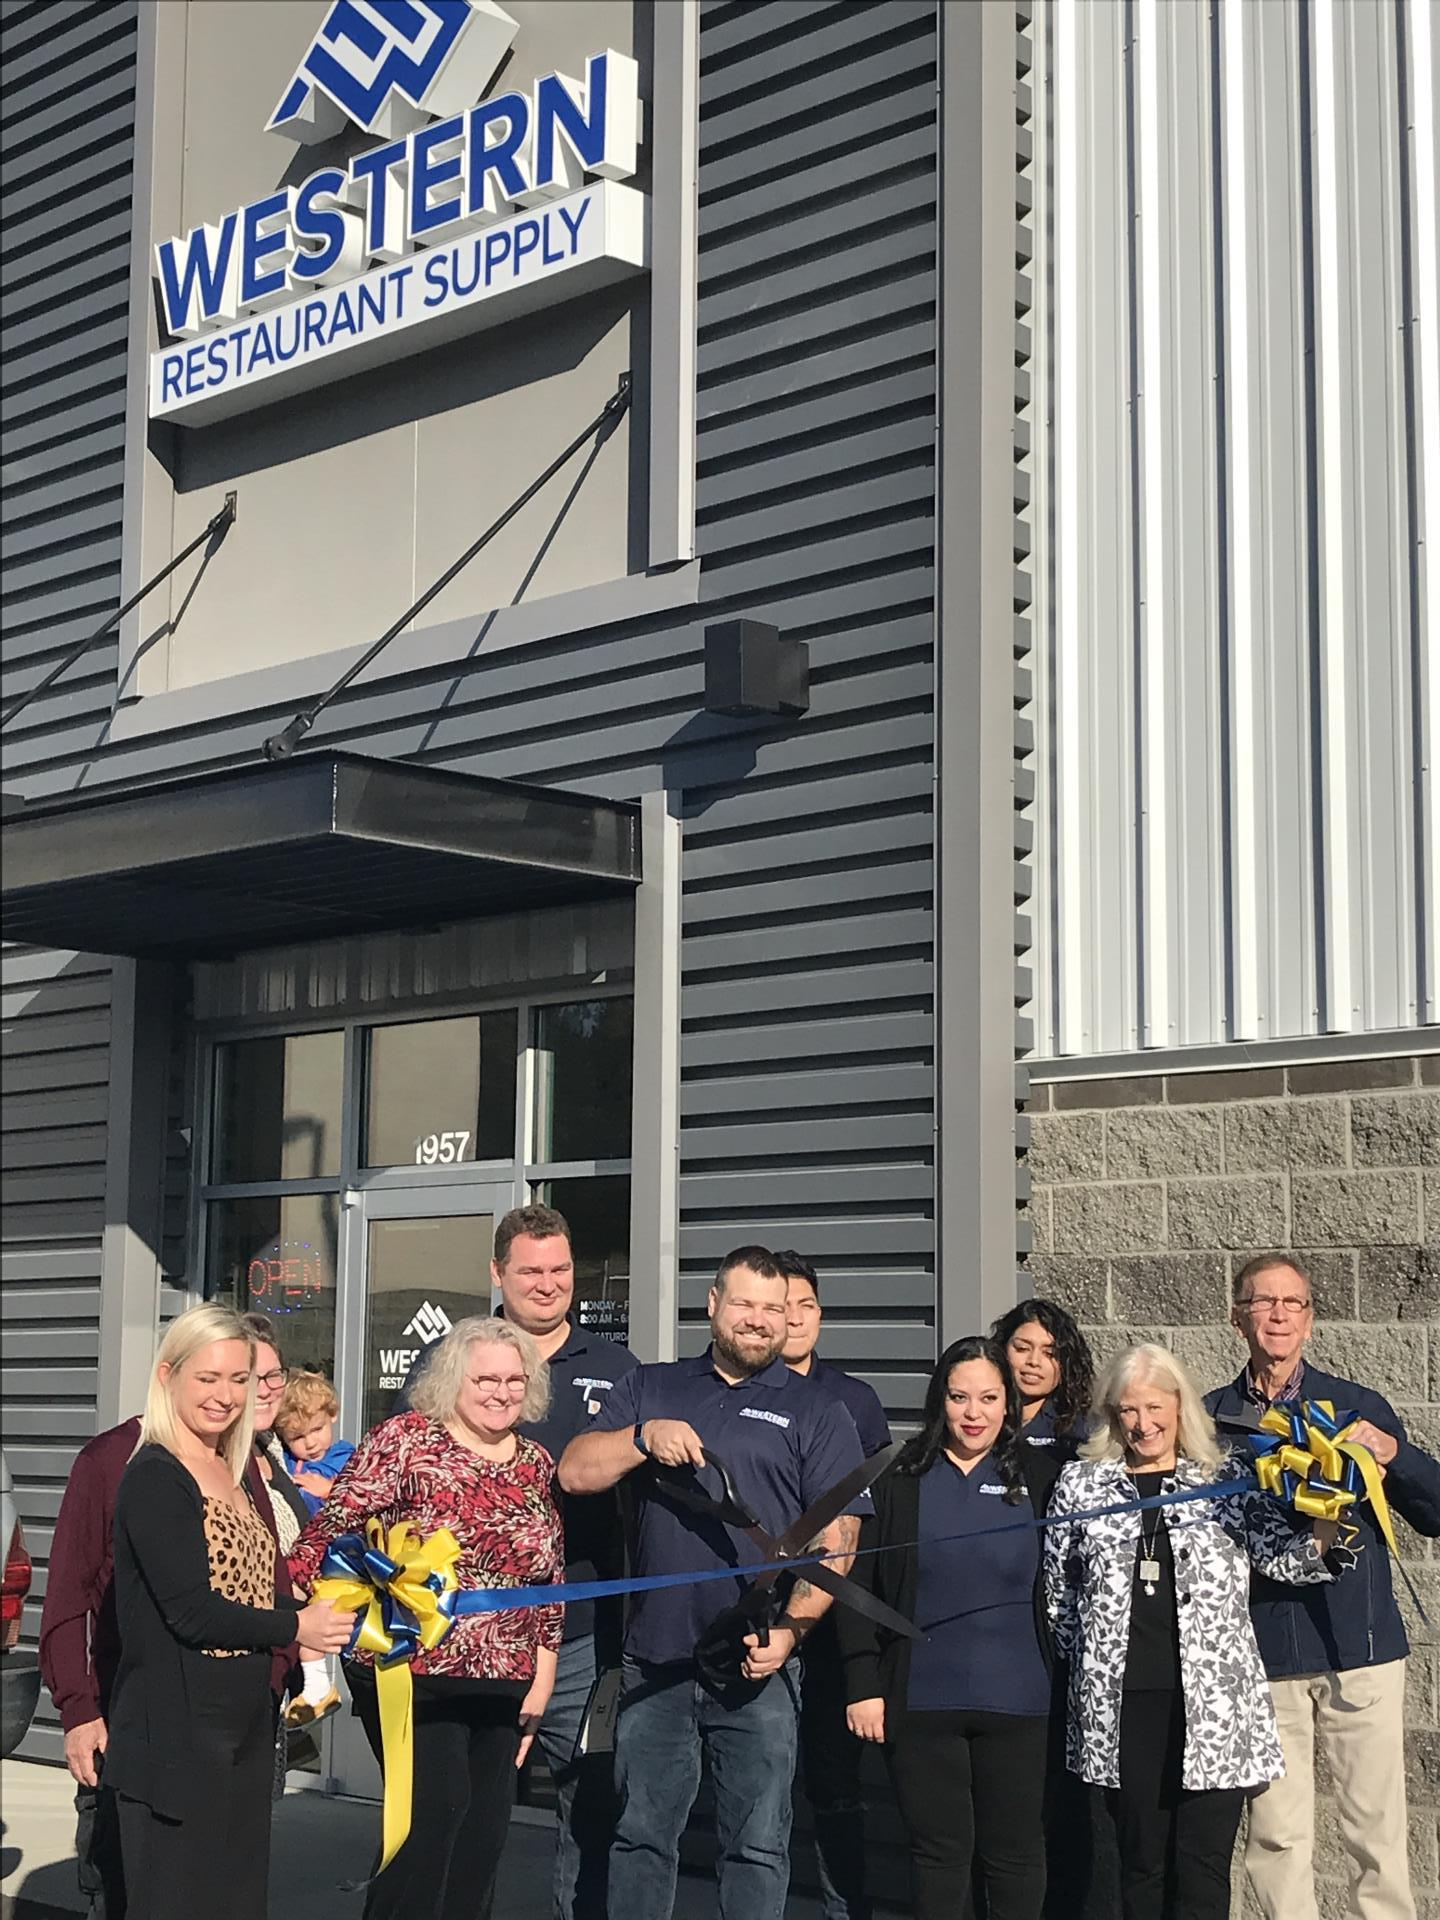 Western Restaurant Supply Opens Their Doors in a New Location